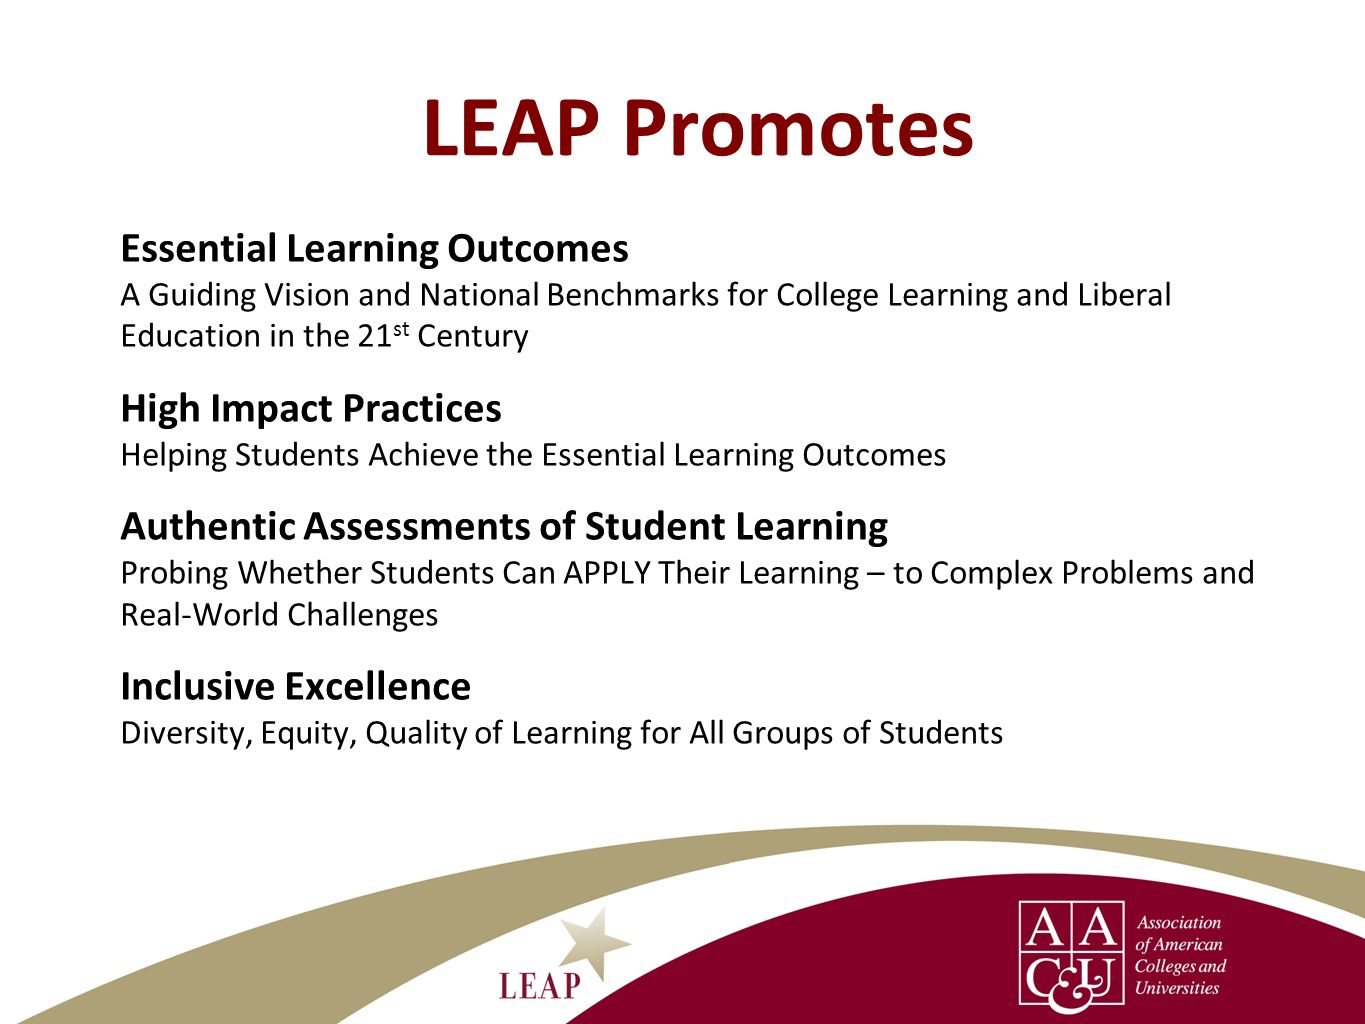 LEAP Promotes Essential Learning Outcomes High Impact Practices